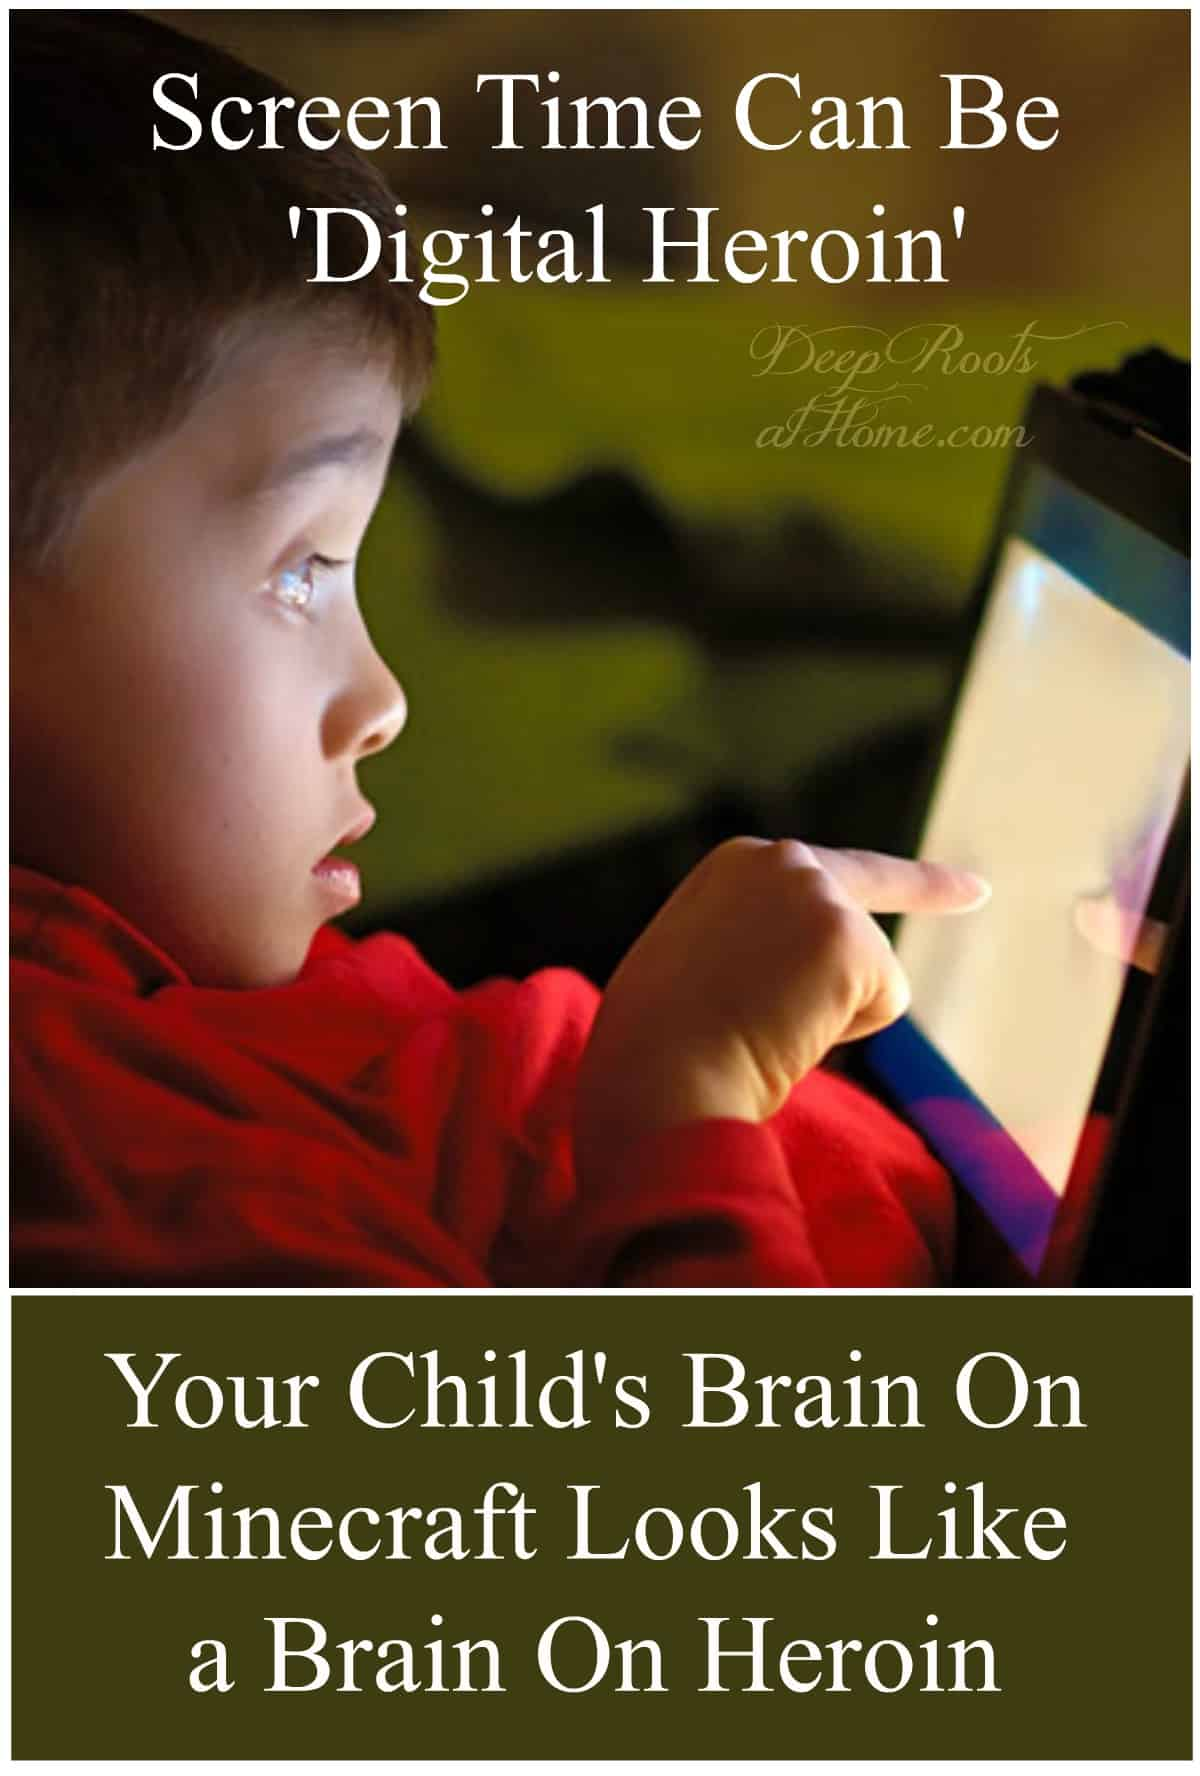 Screen Time, Digital Drug: Brain Images Show It's As Addictive As Opioids. A young child totally focused on his iPad,